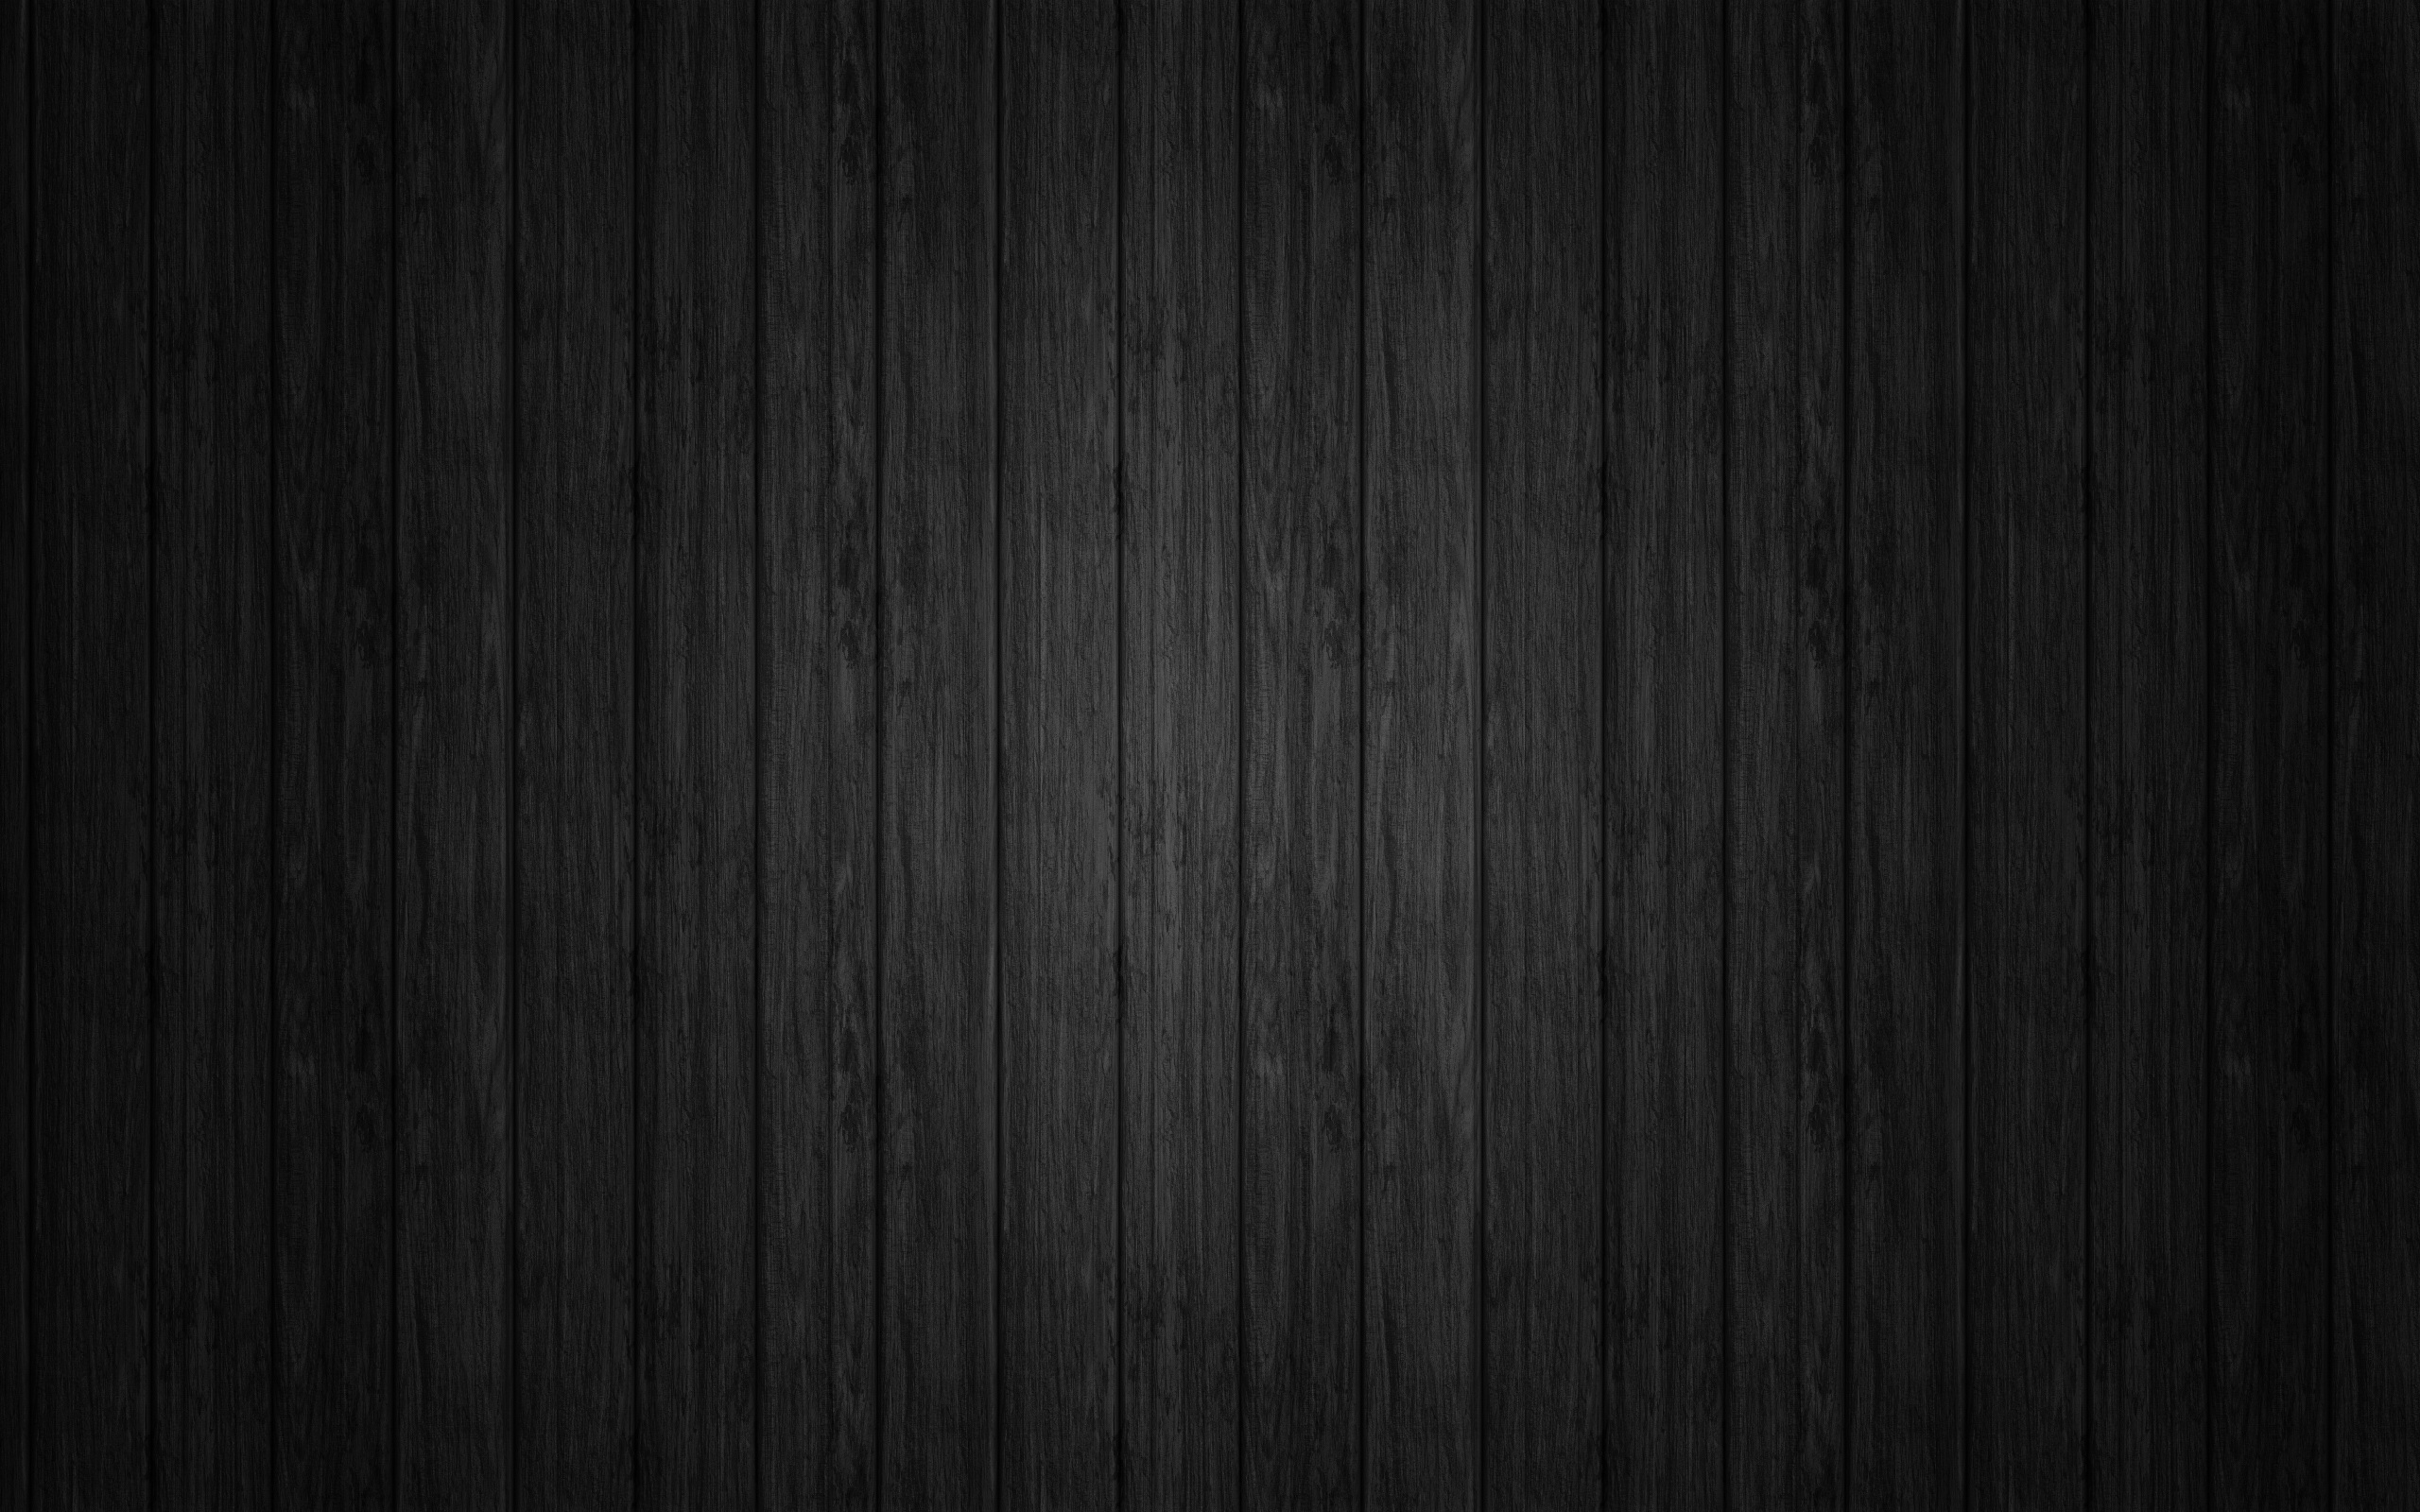 Holz full hd wallpaper and hintergrund 2560x1600 id 357537 for Holz wallpaper